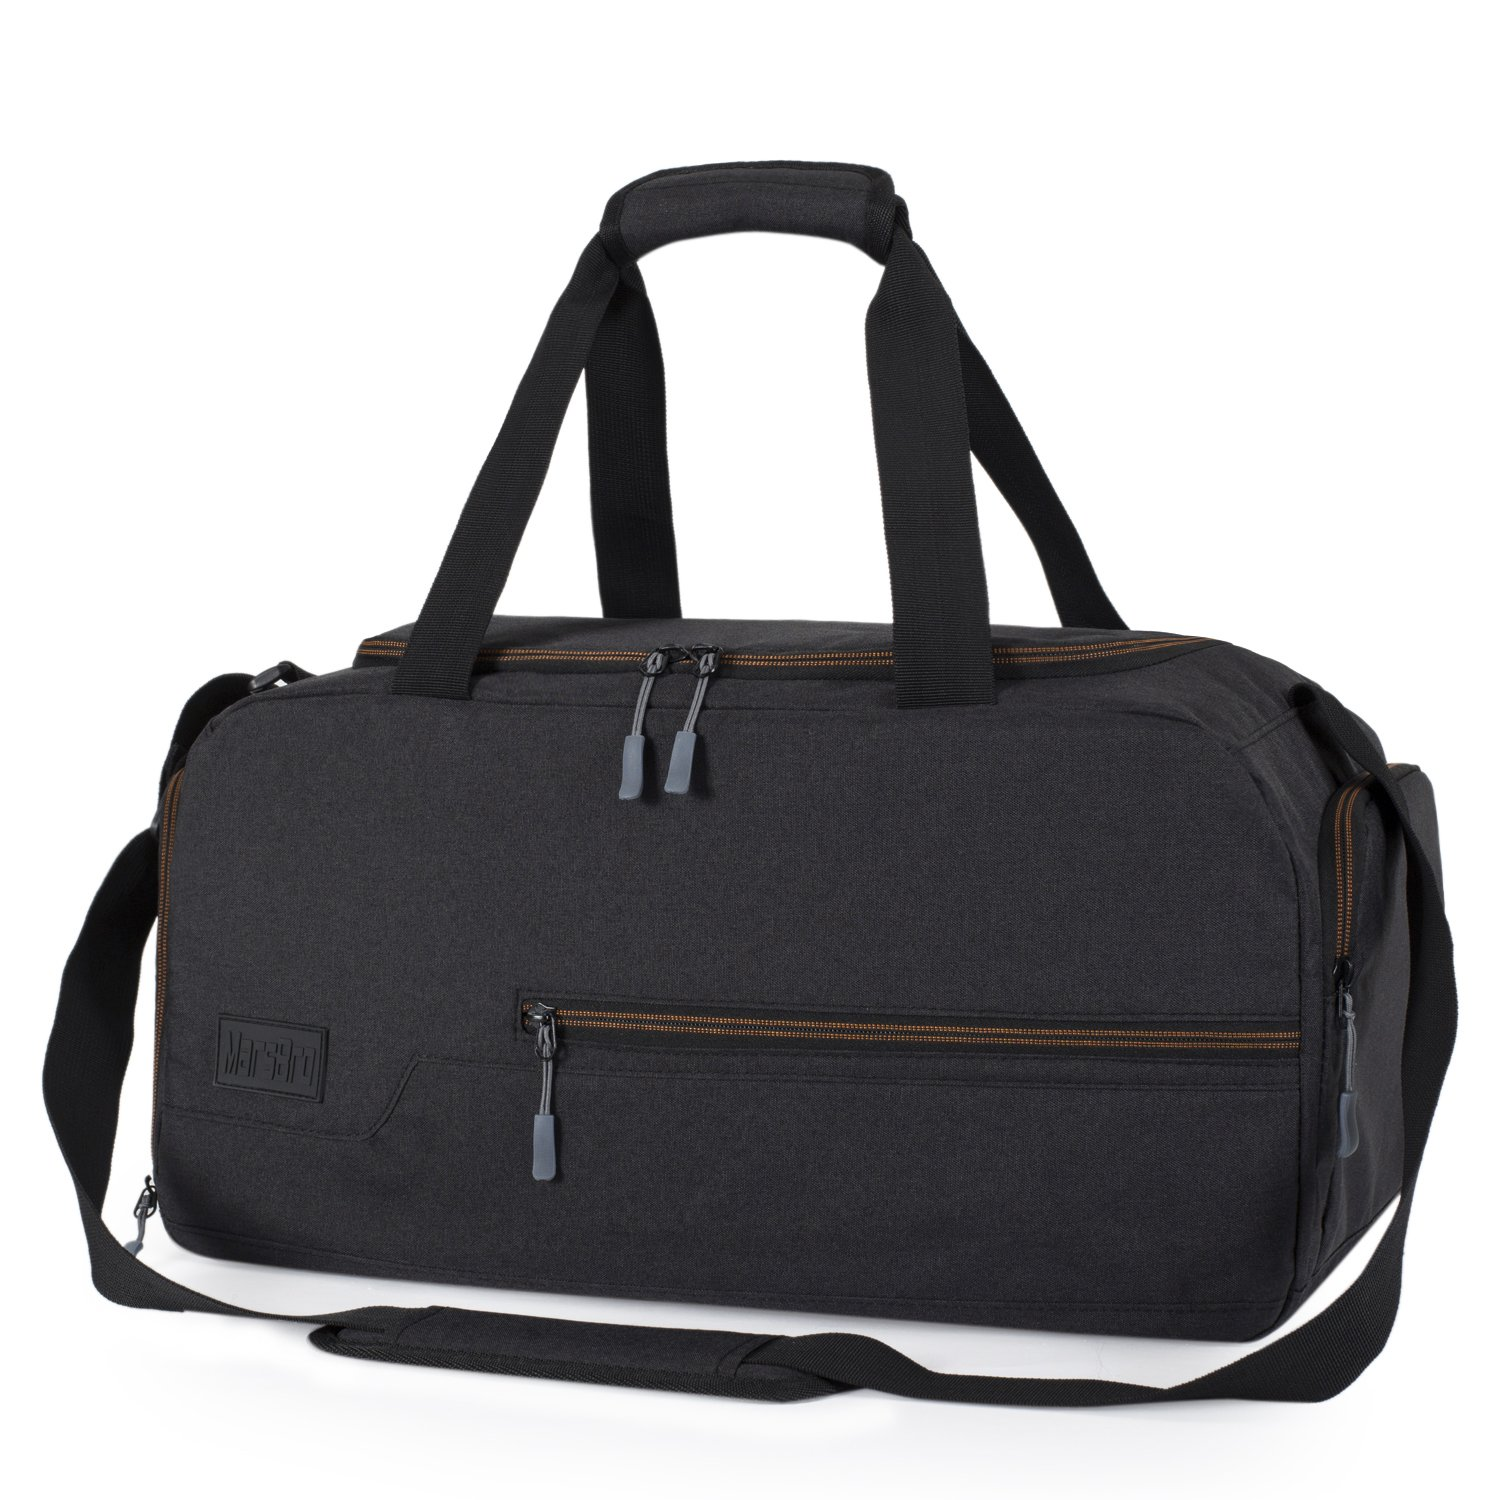 MarsBro Water Resistant Sports Gym Travel Weekender Duffel Bag with Shoe Compartment Black by MarsBro